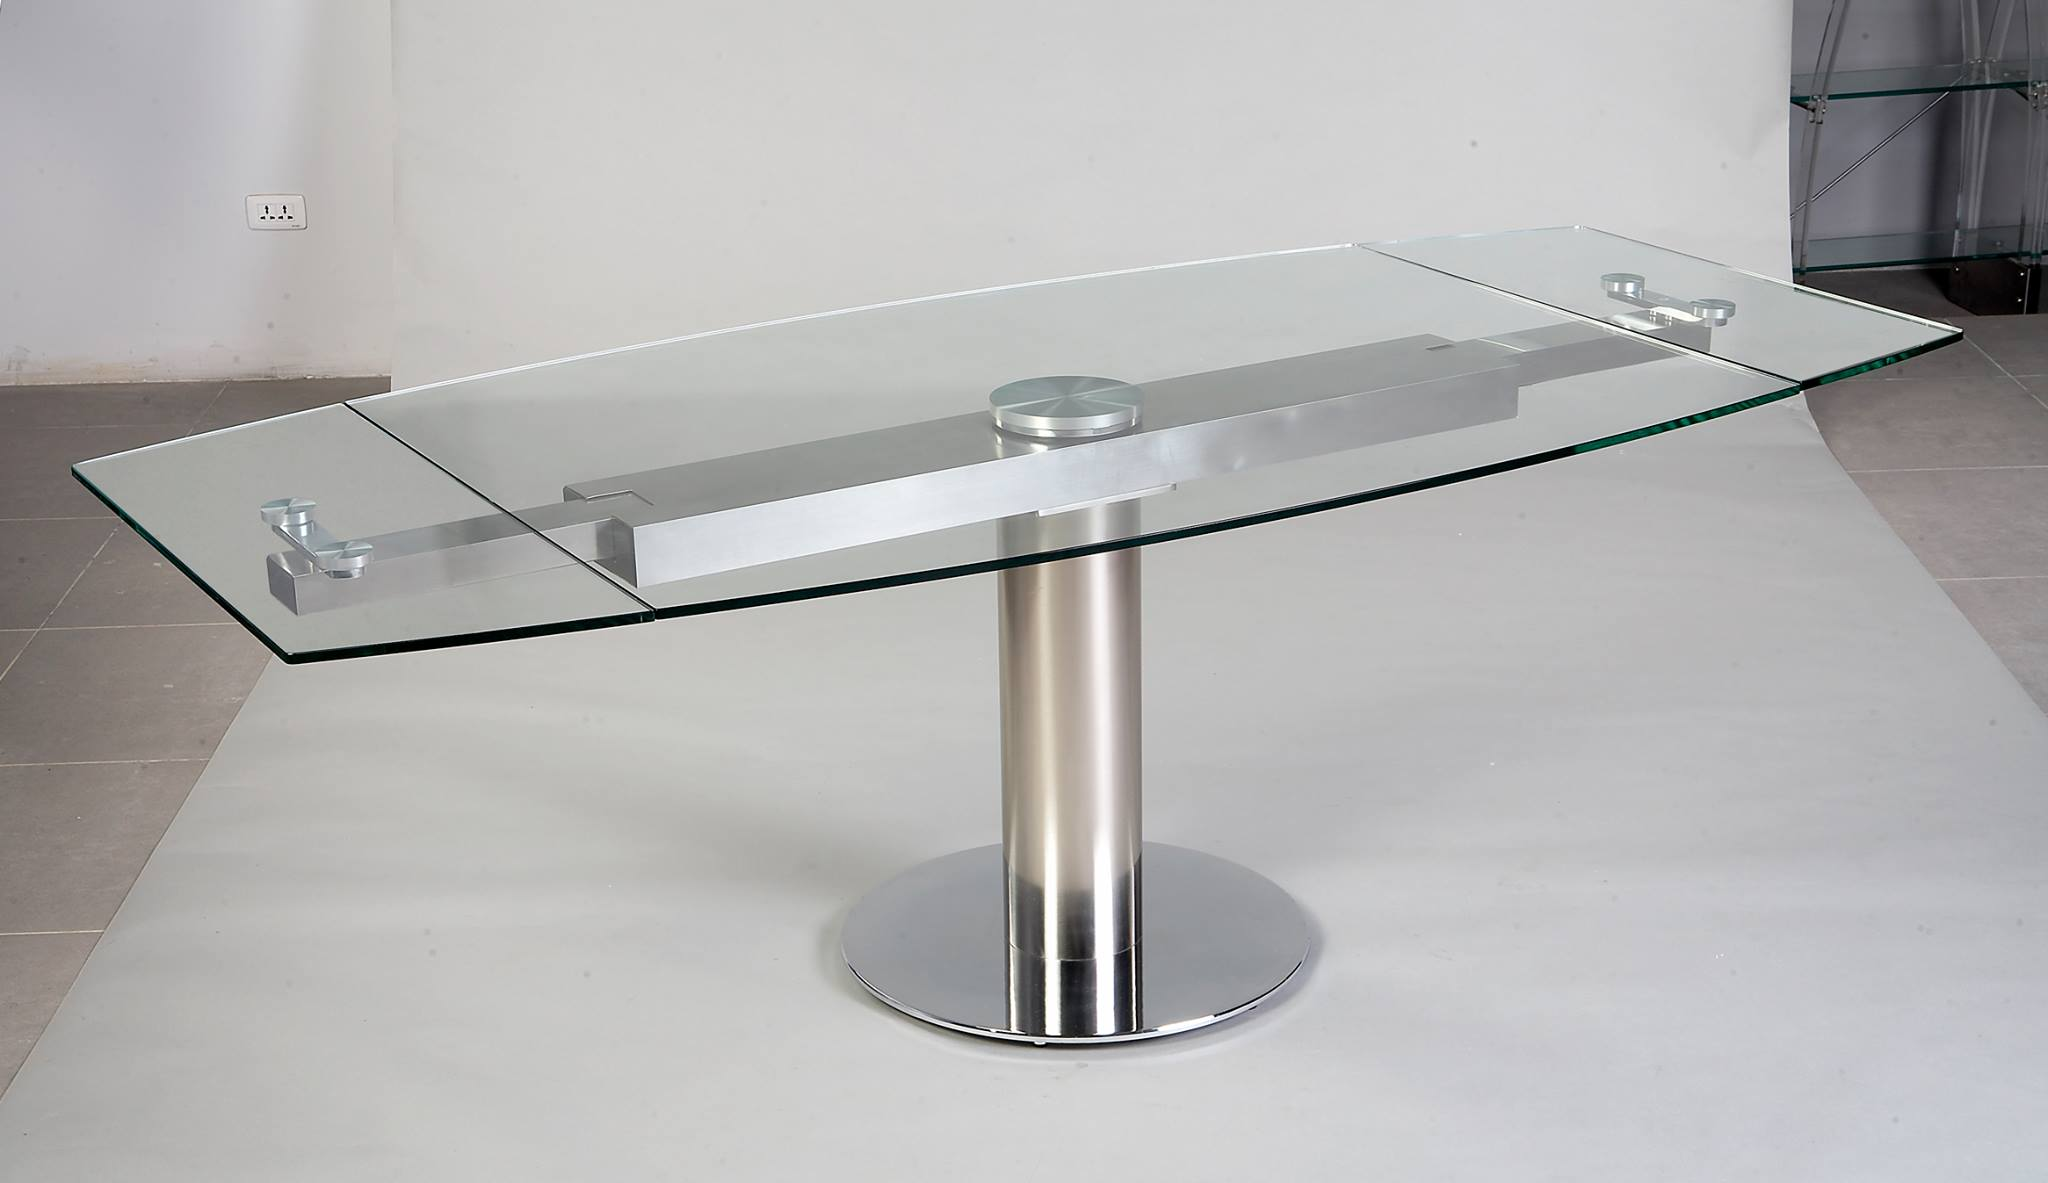 Table verre pied central allonge for Table design avec rallonge